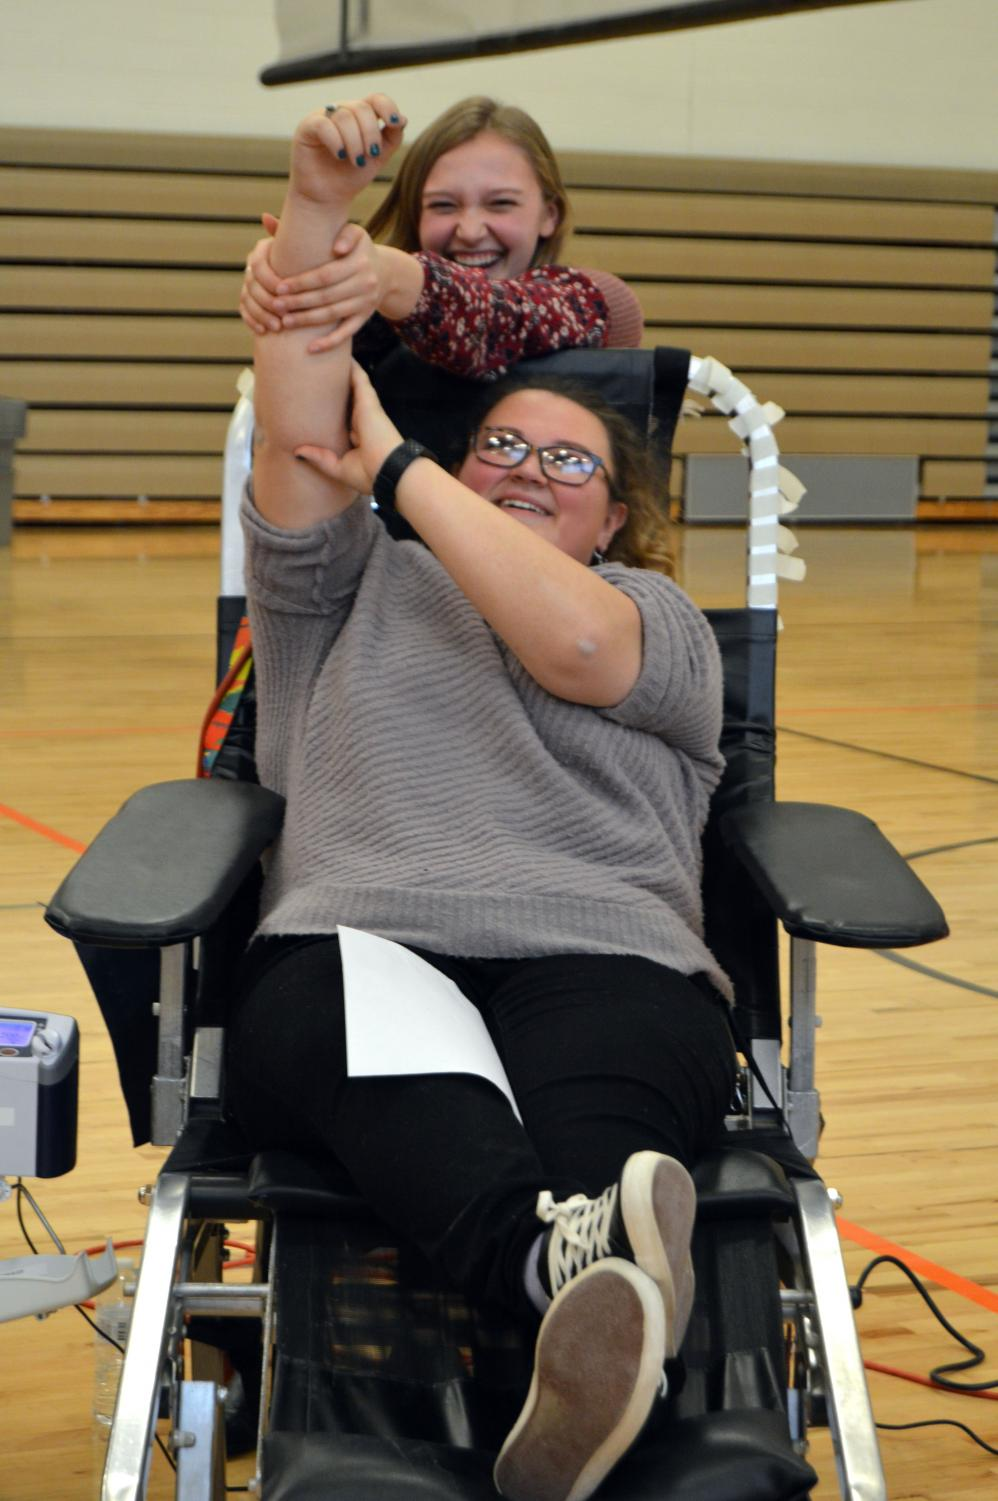 Senior Lauren Megdanoff gets her blood drawn as fellow senior Mallorie Johnson messes around trying to distract her from the blood drawn. On Jan. 9th, Fenton High School hosted a student blood drive for the day.